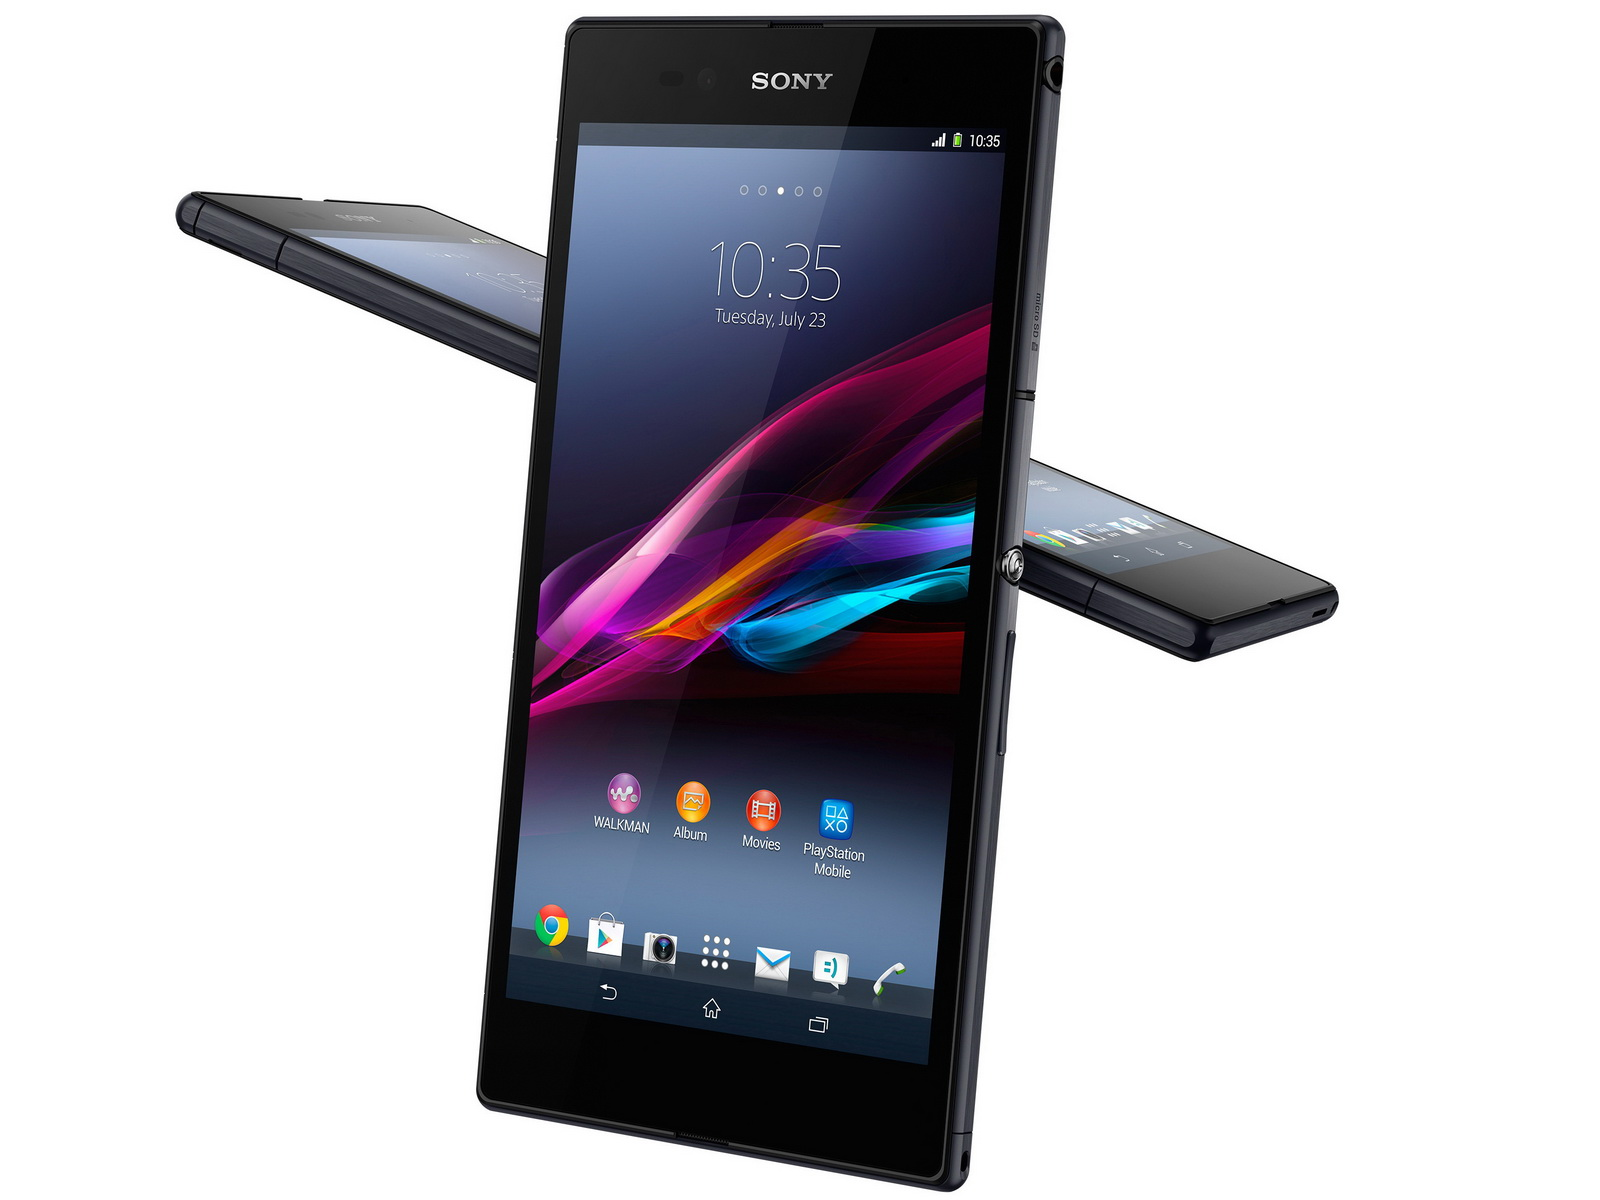 Usb Charging Hub >> Sony unveils 6.4-inch Xperia Ultra phablet and SmartWatch 2 - NotebookCheck.net News